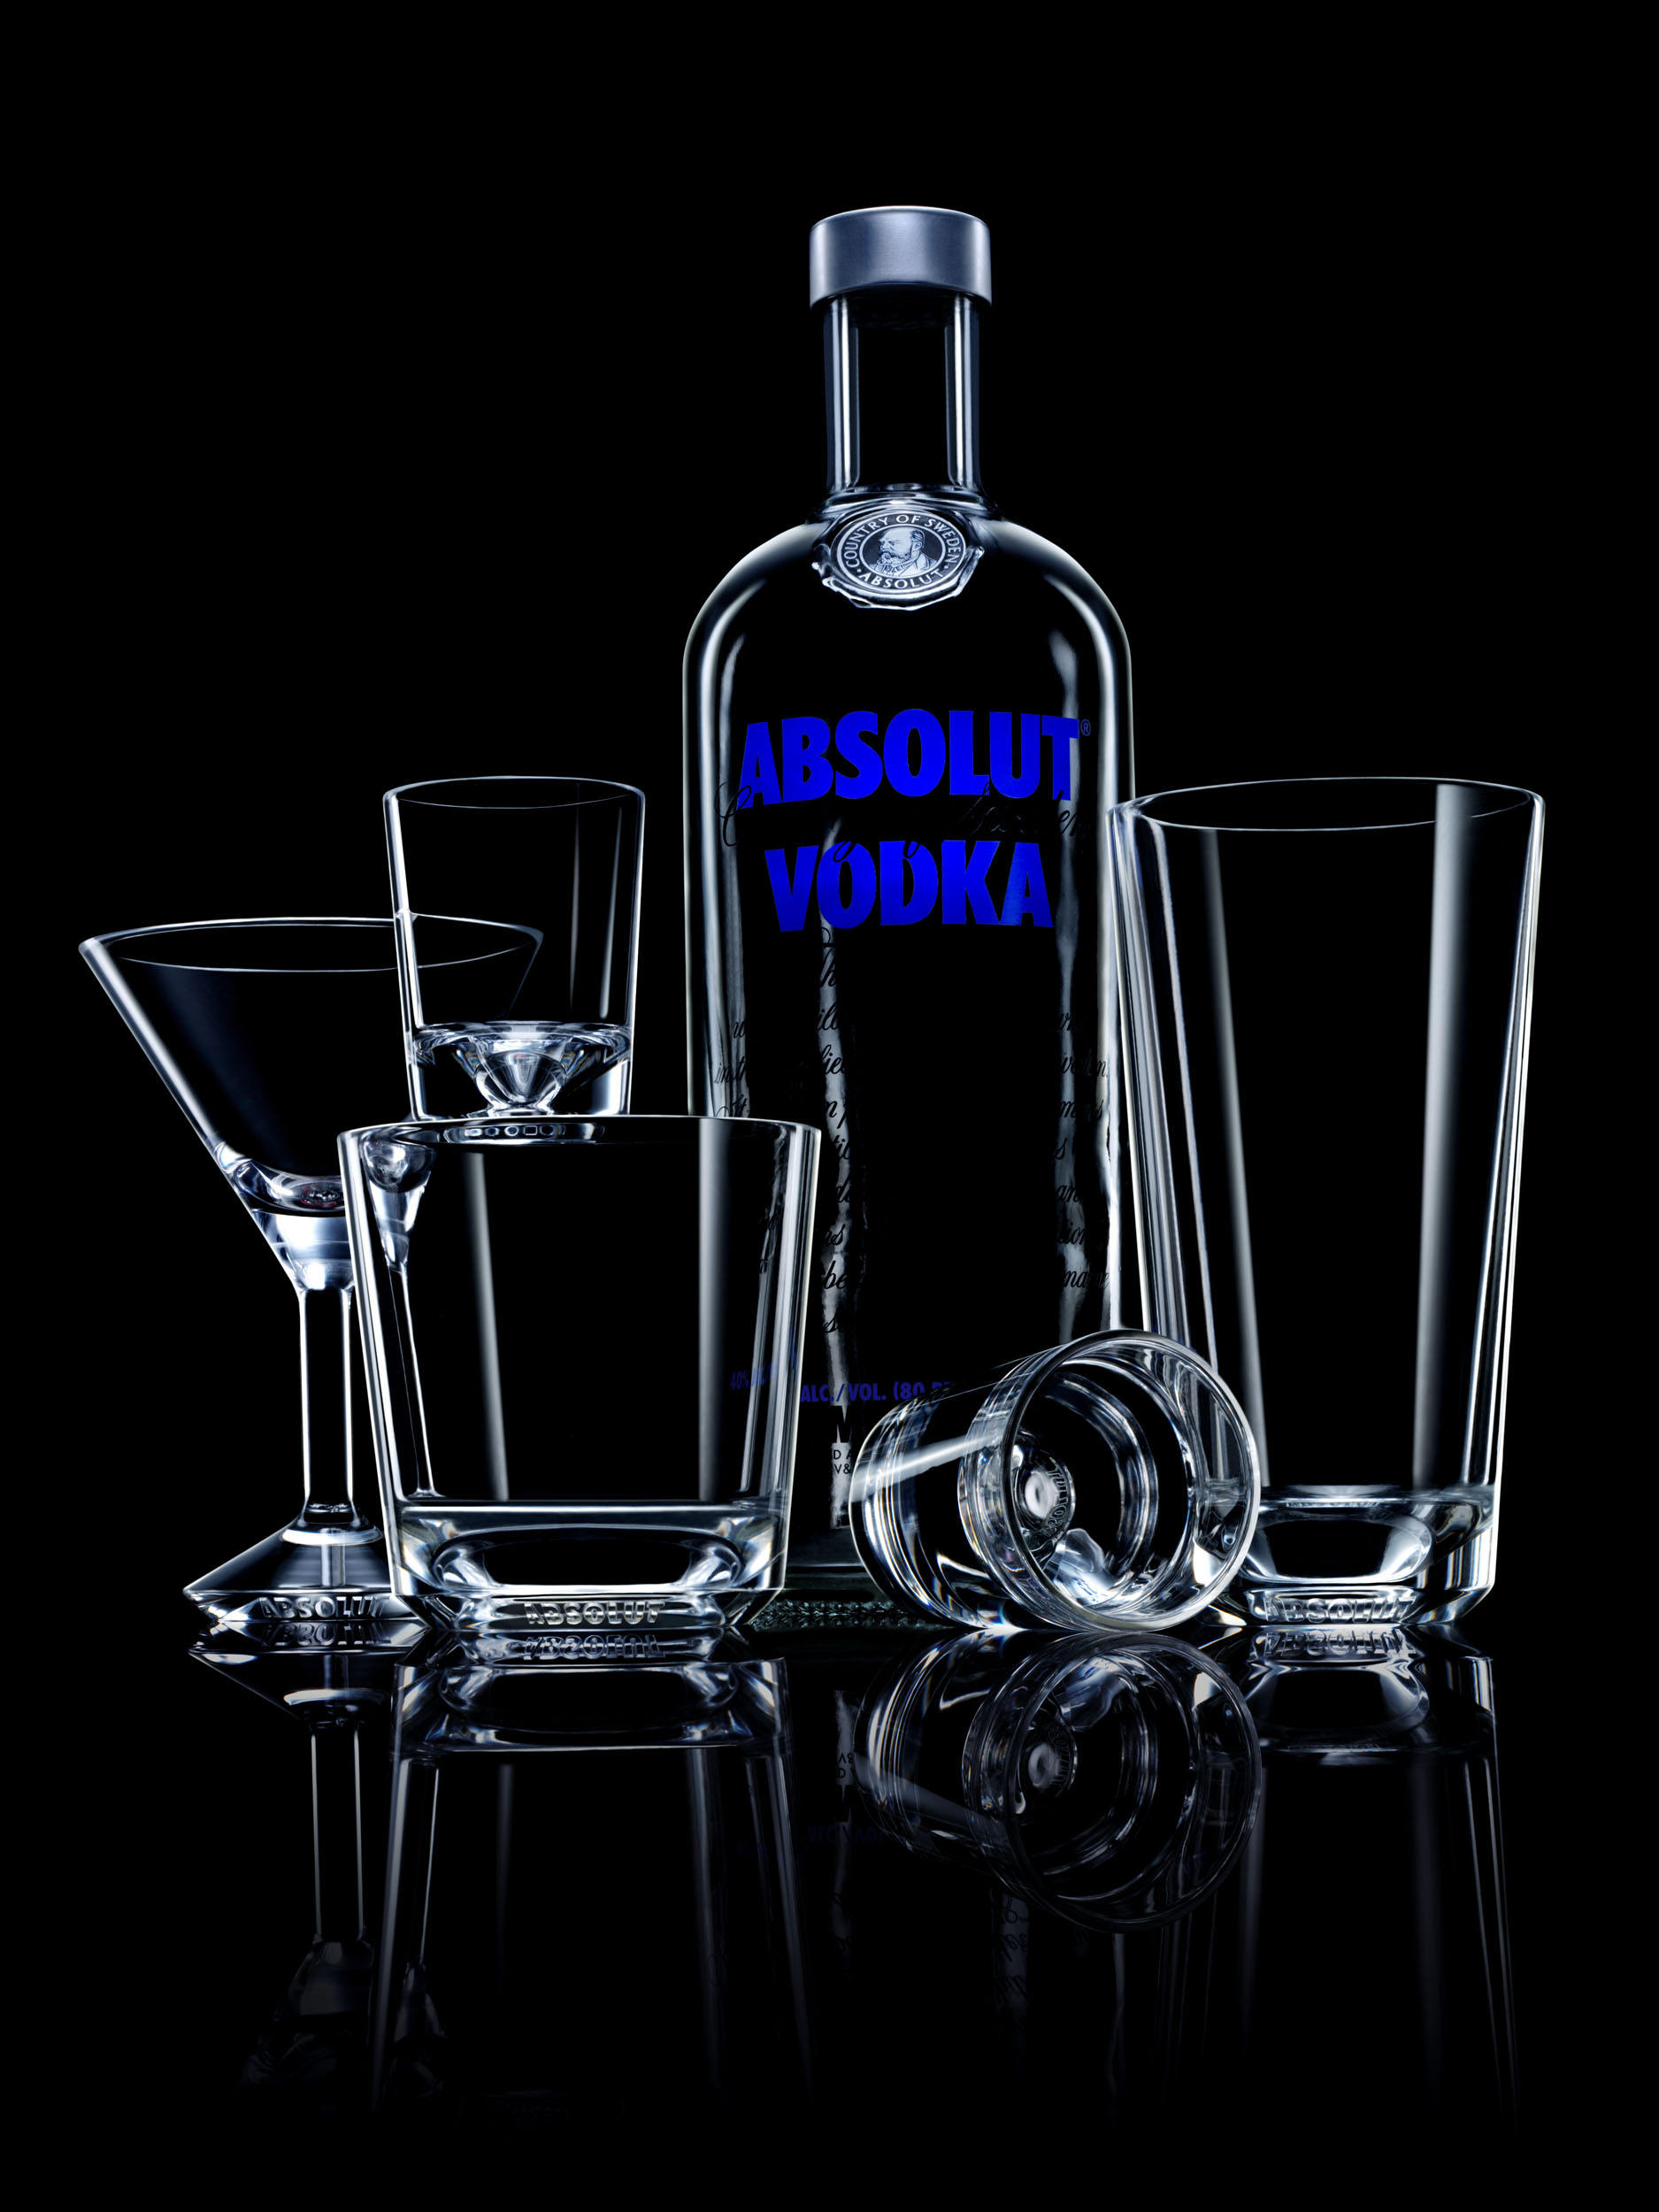 jensmortensen-absolut-vodka-4b7c1d2d